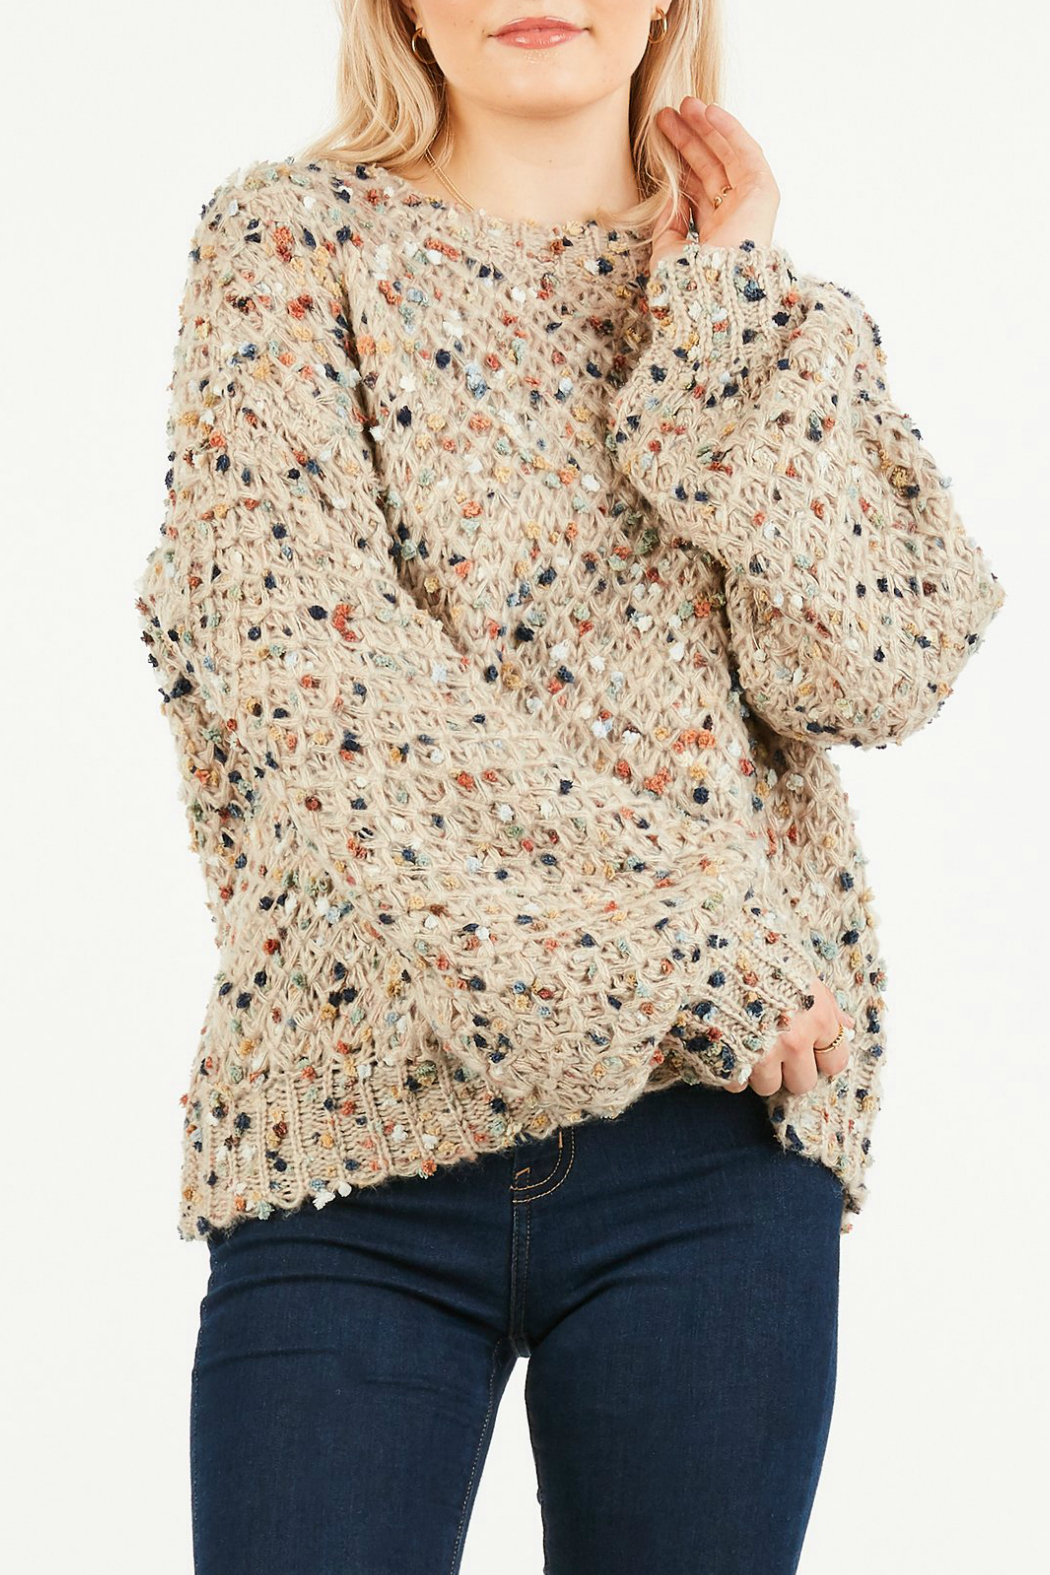 LoveRiche Fuzzy cable knit sweater - Main Image